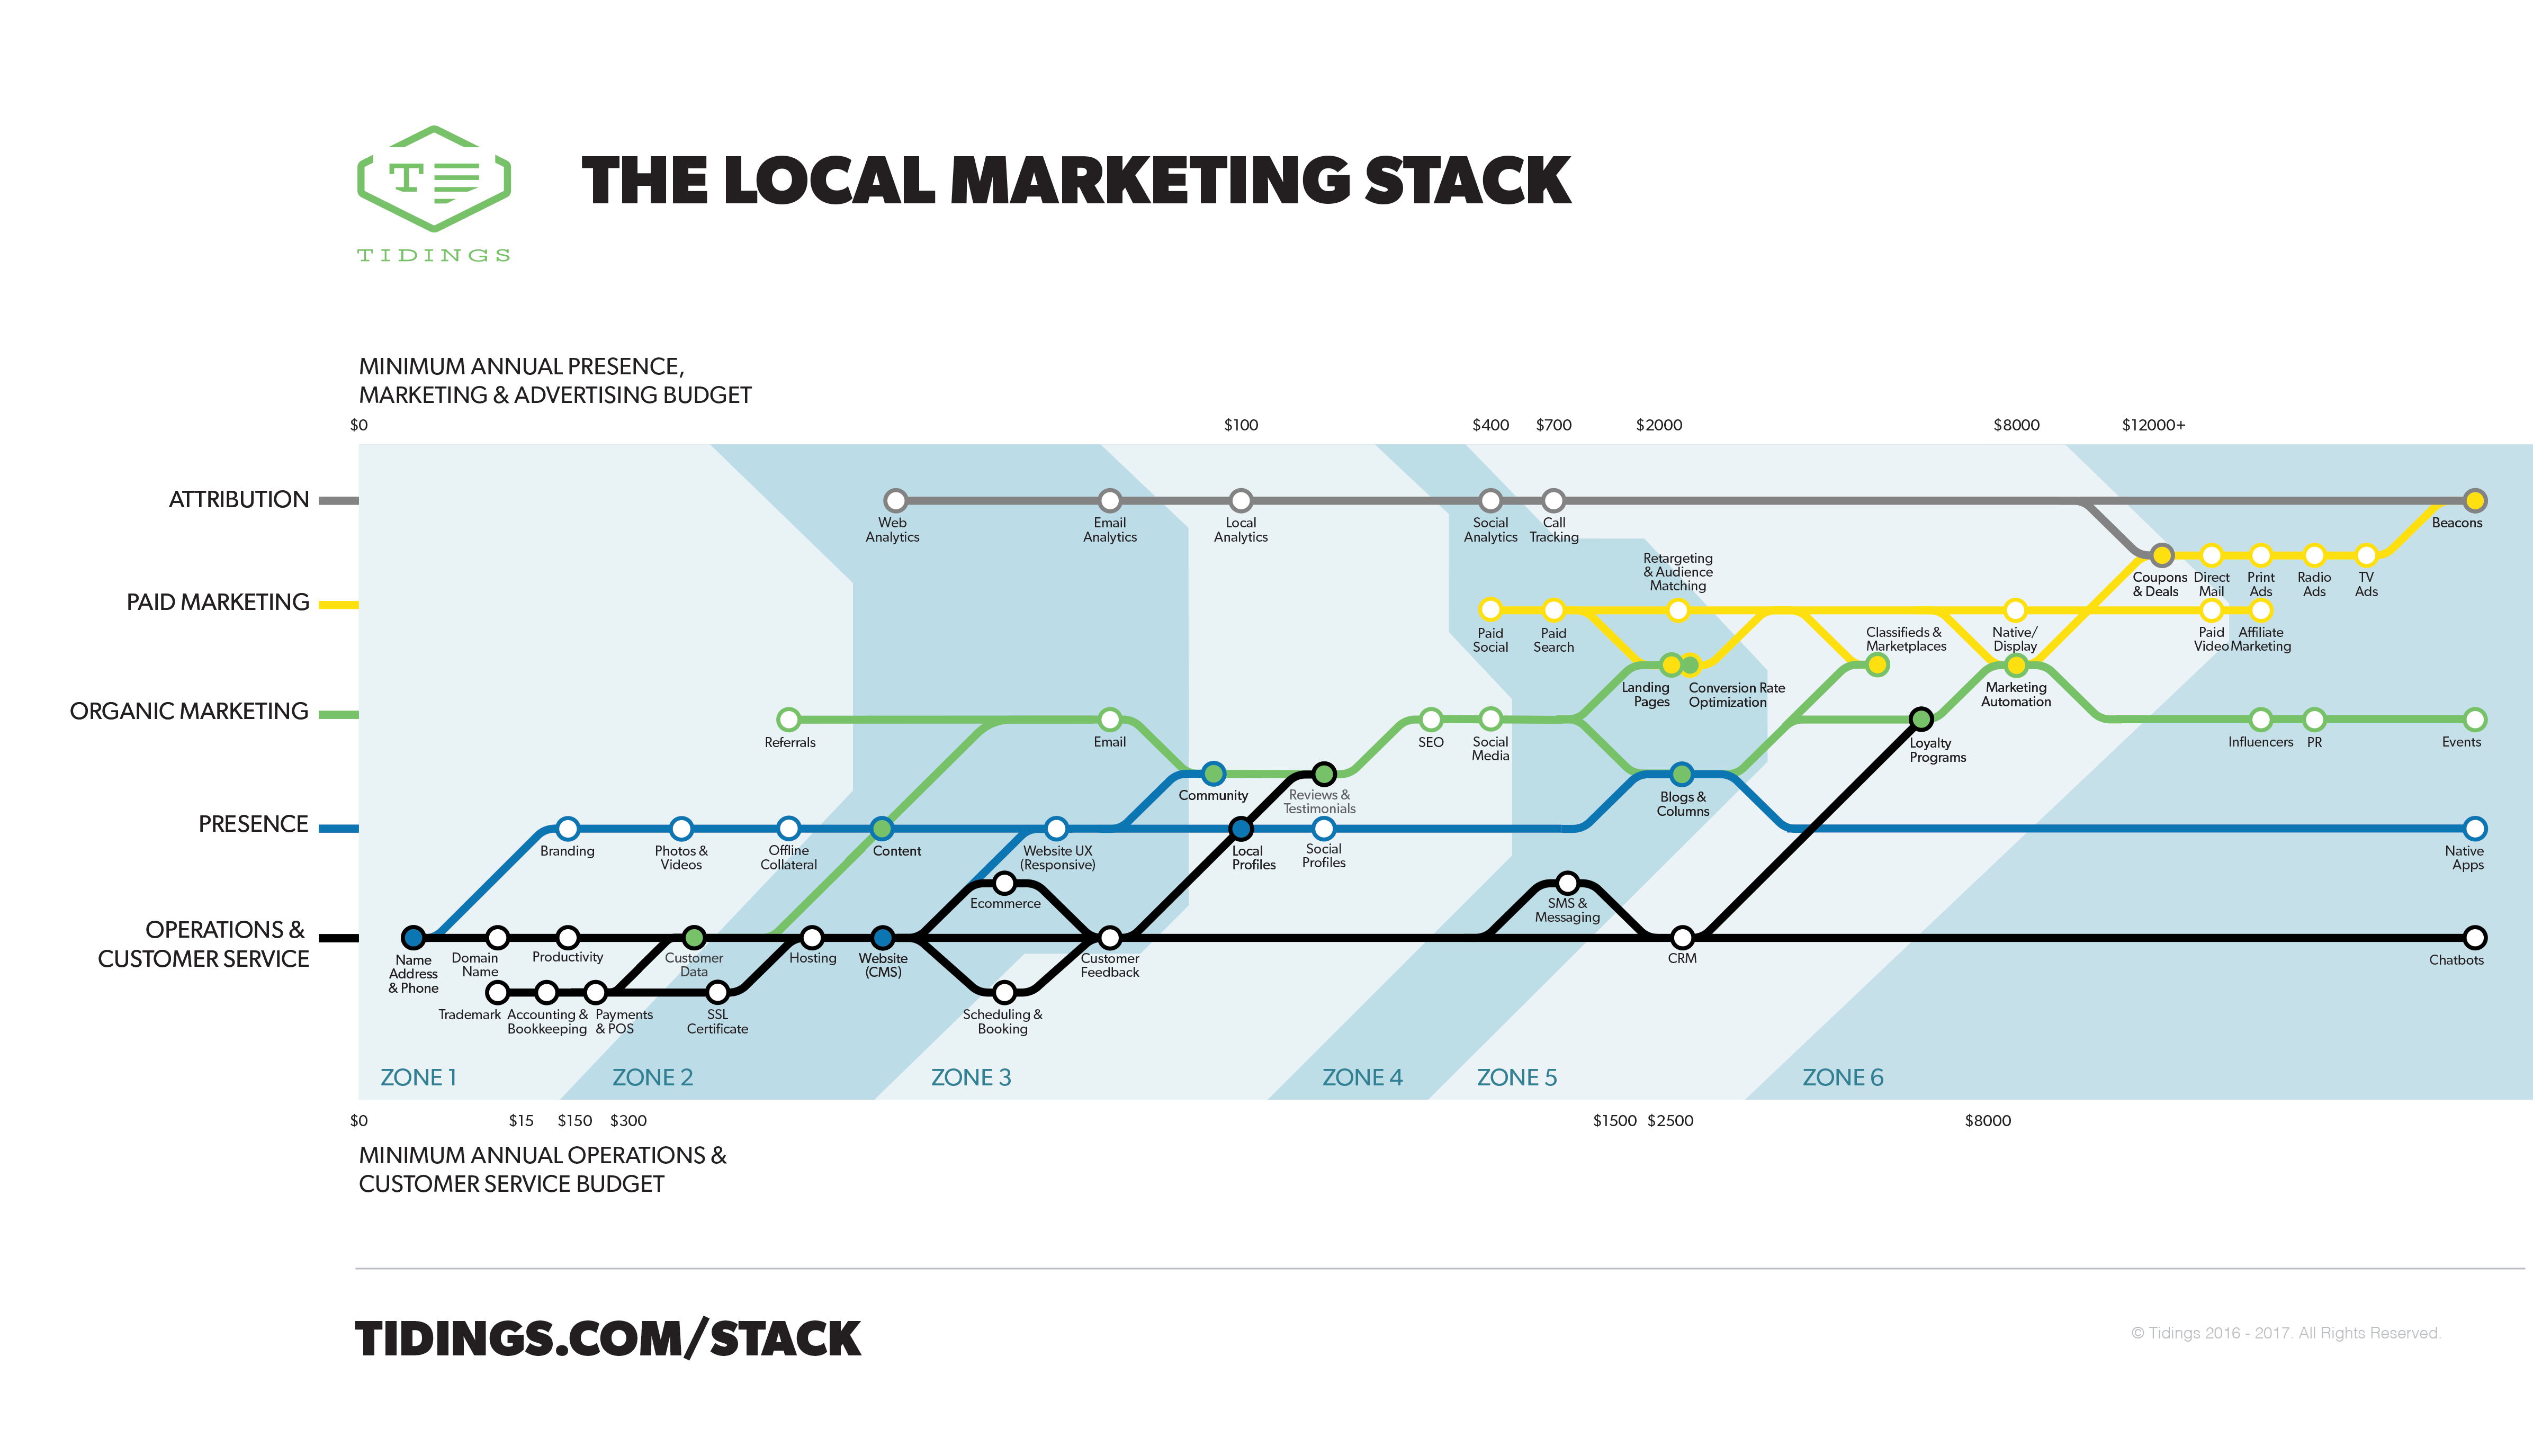 The Local Marketing Stack: Set Your Small Business Marketing Priorities